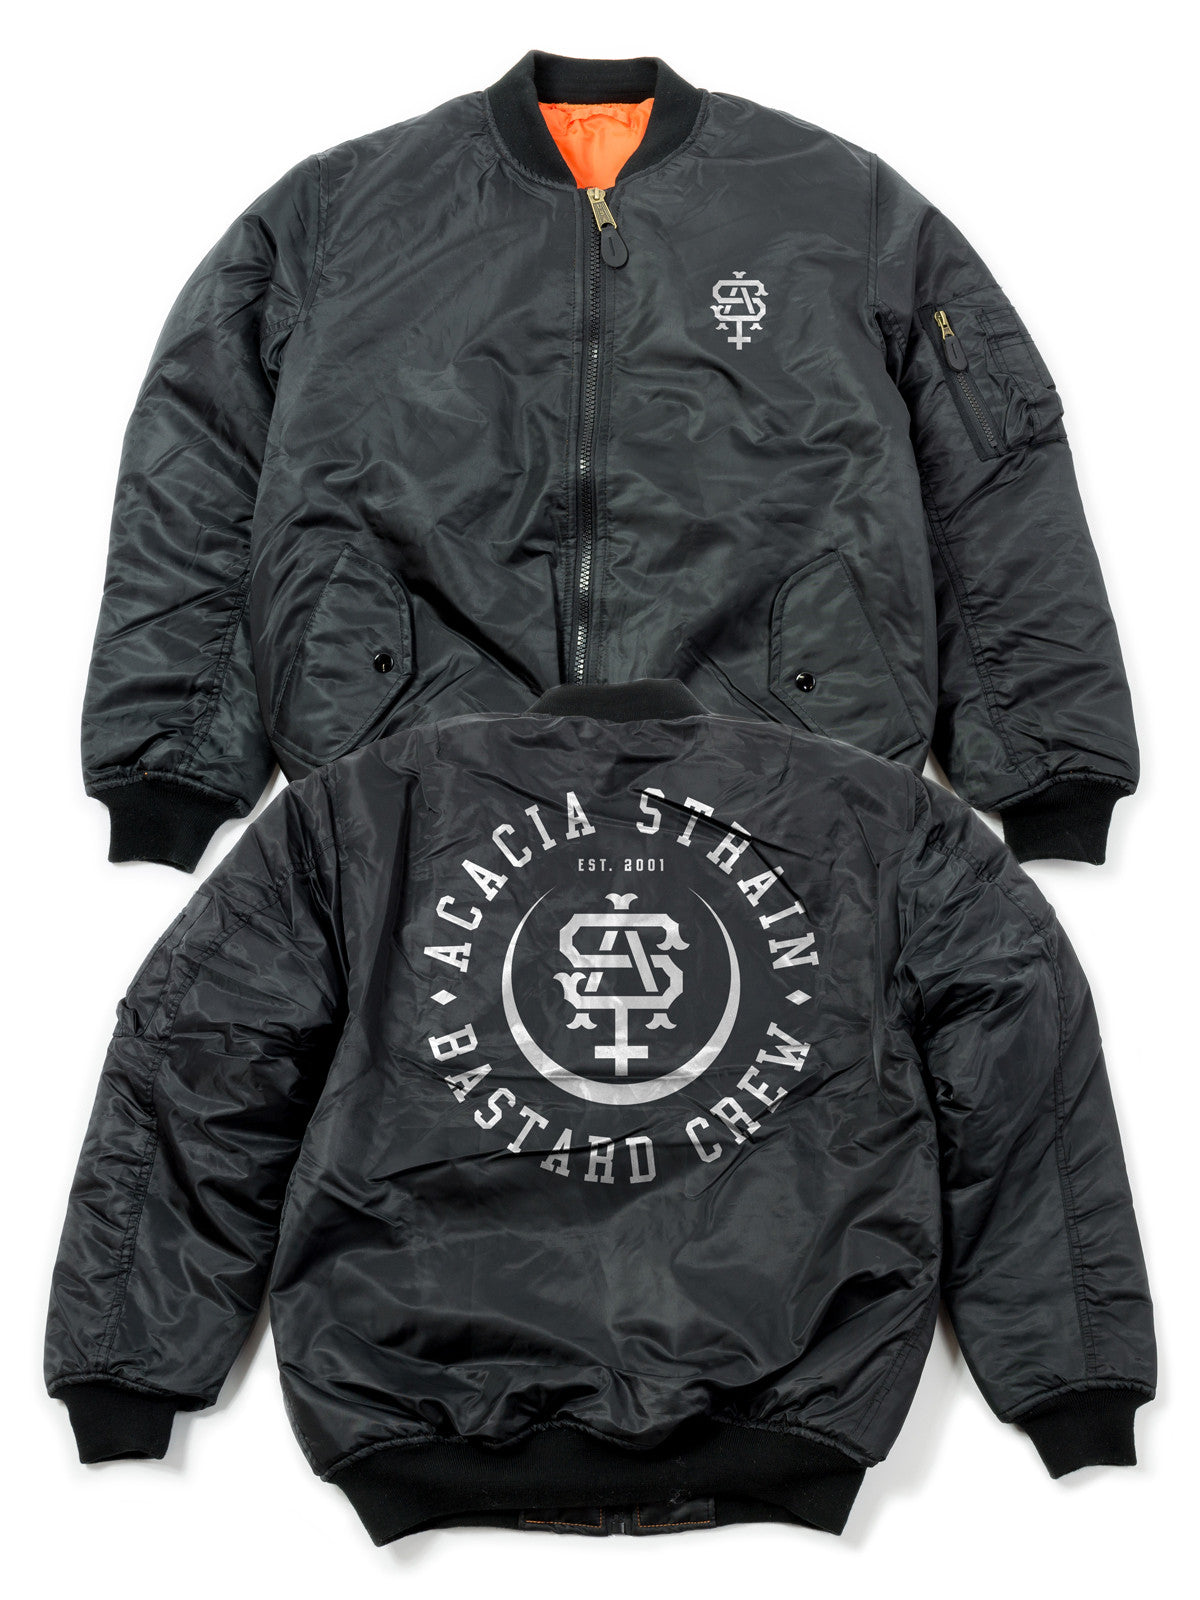 The Acacia Strain - Bastard Crew Bomber Jacket - Merch Limited